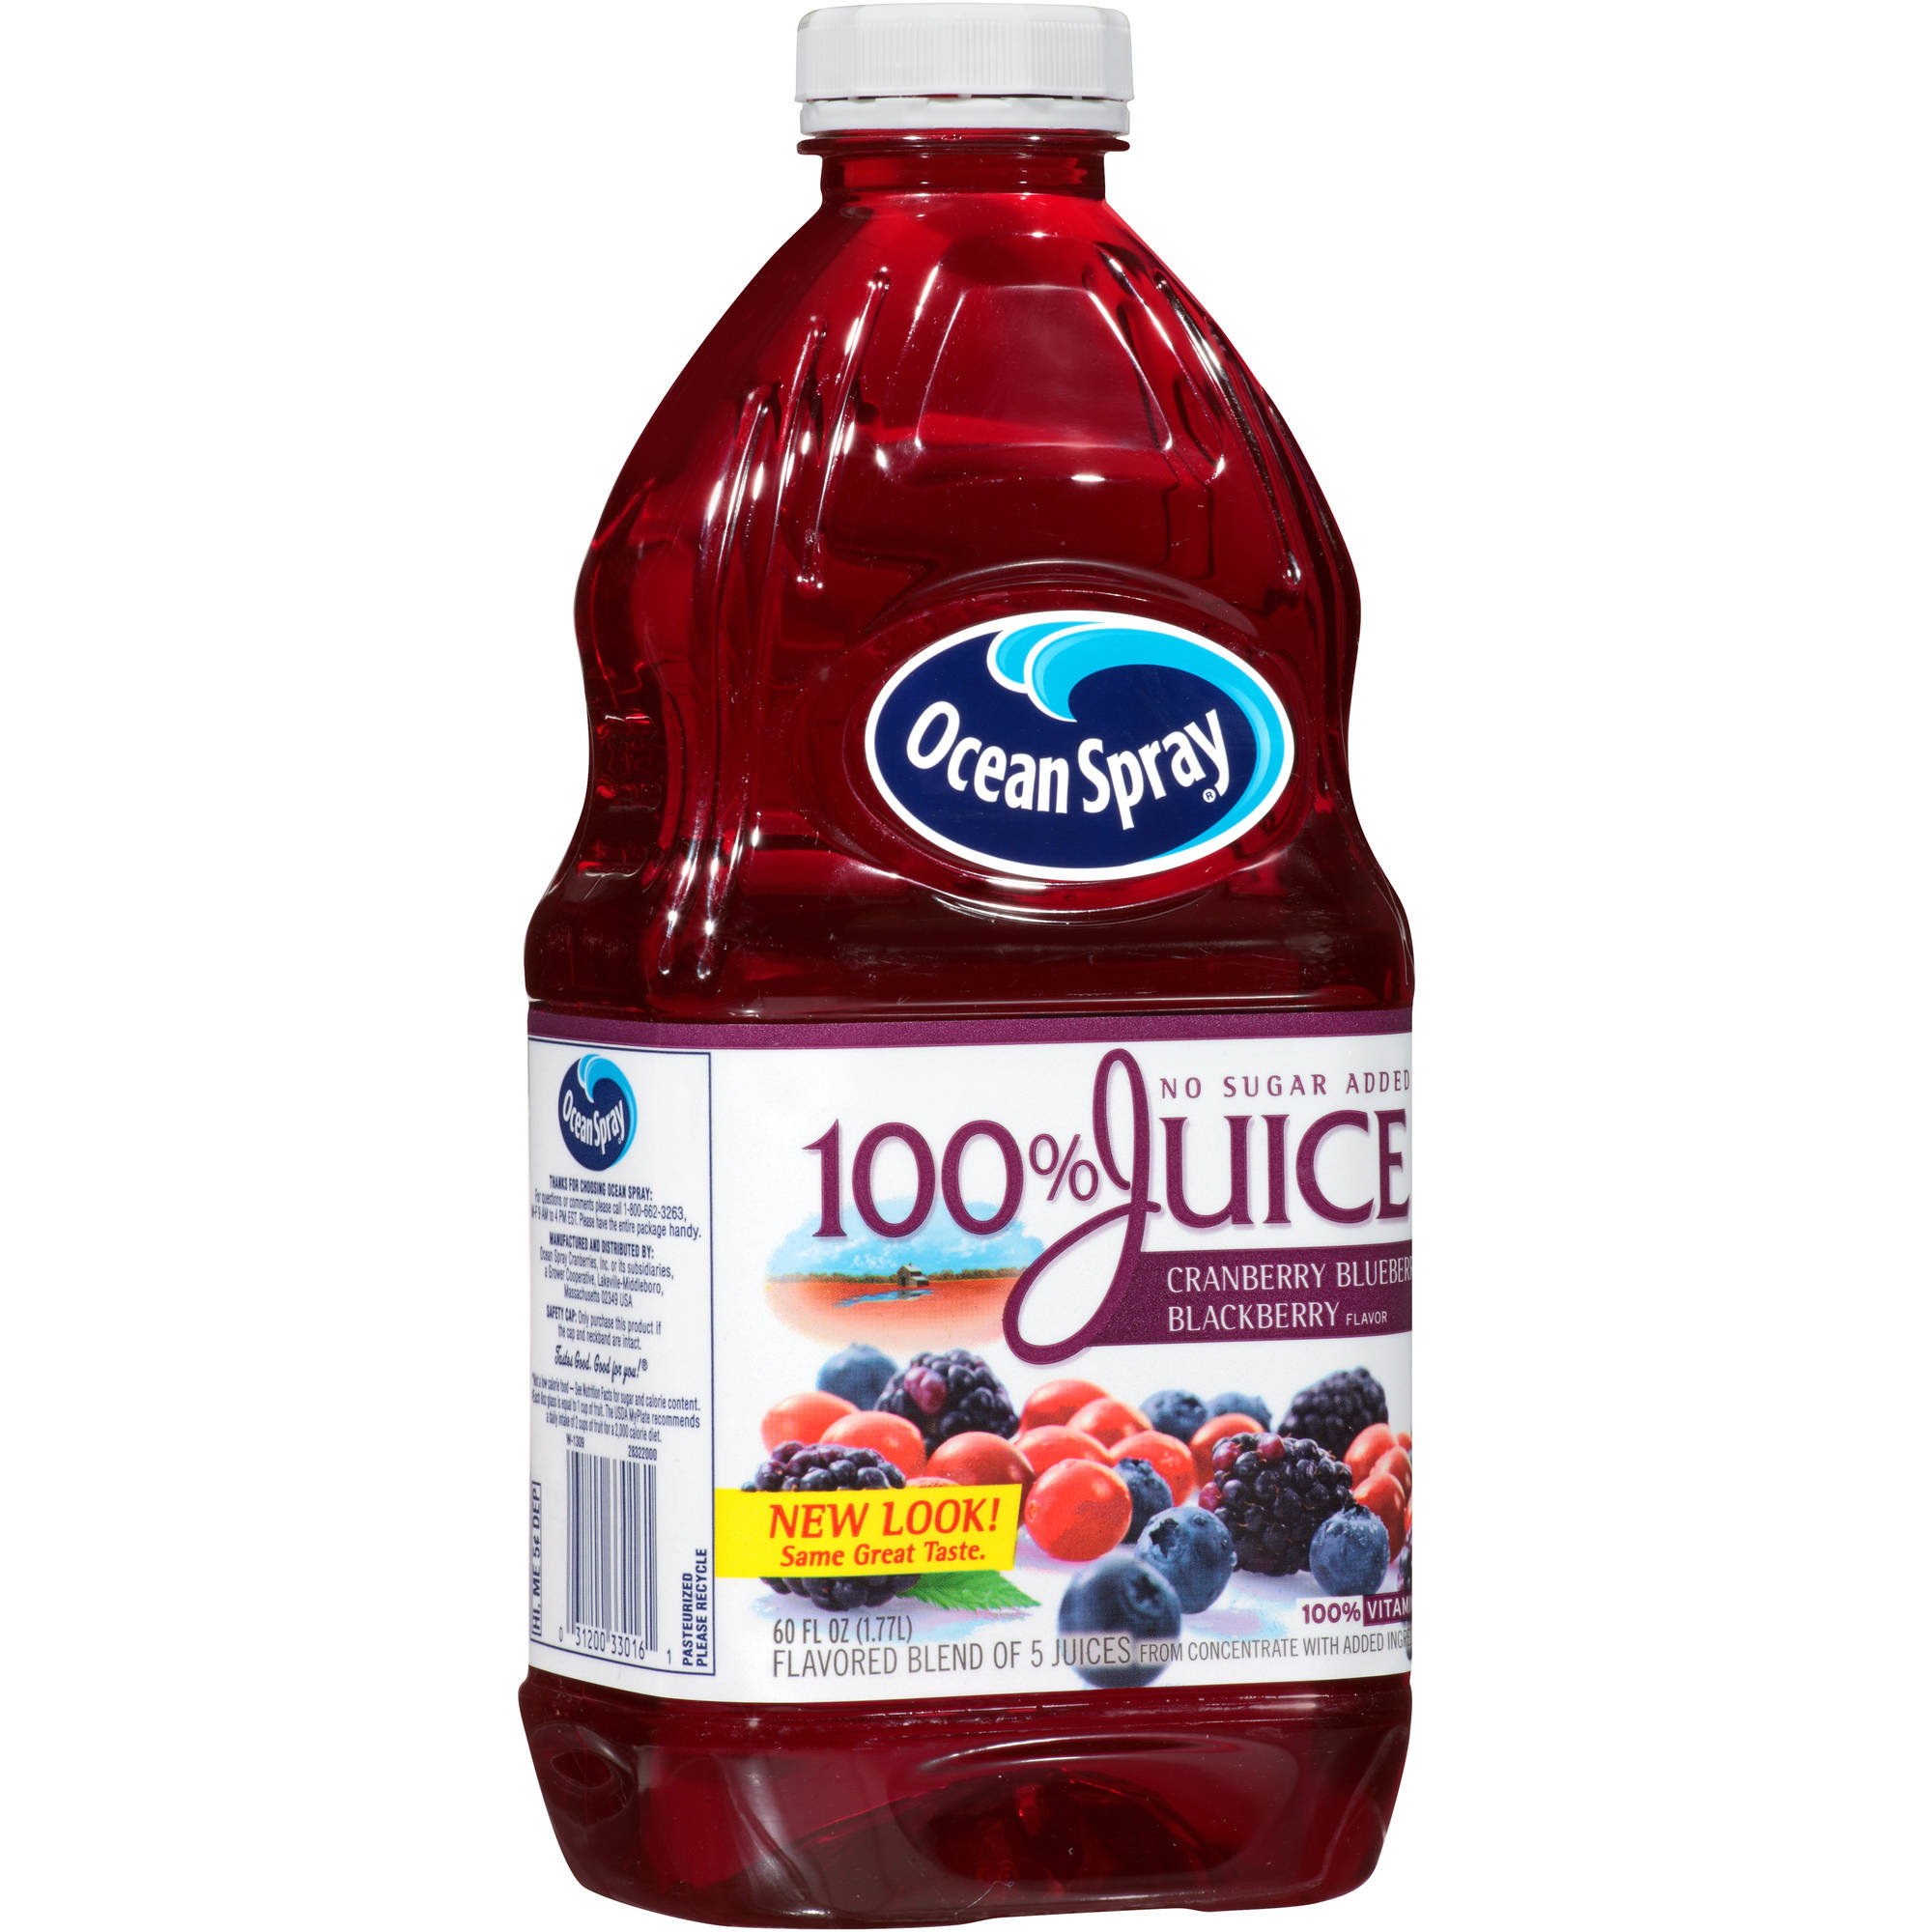 Ocean Spray No Sugar Added Cranberry Blueberry Blackberry, 100% Juice, 60 fl oz